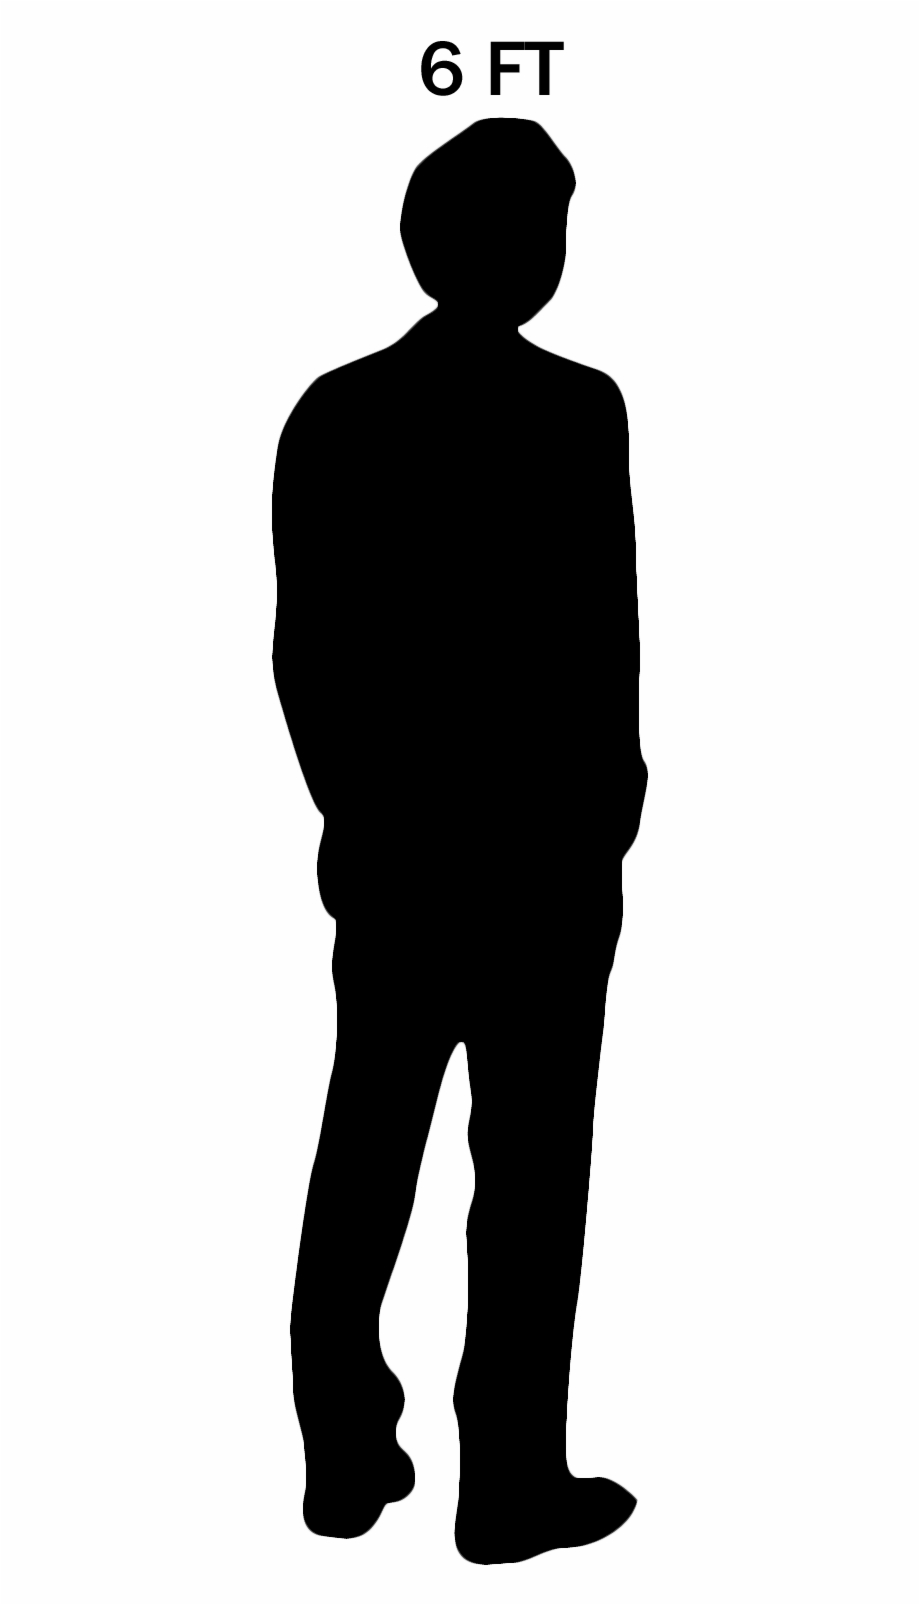 Human Scale Figure, Transparent Png Download For Free.